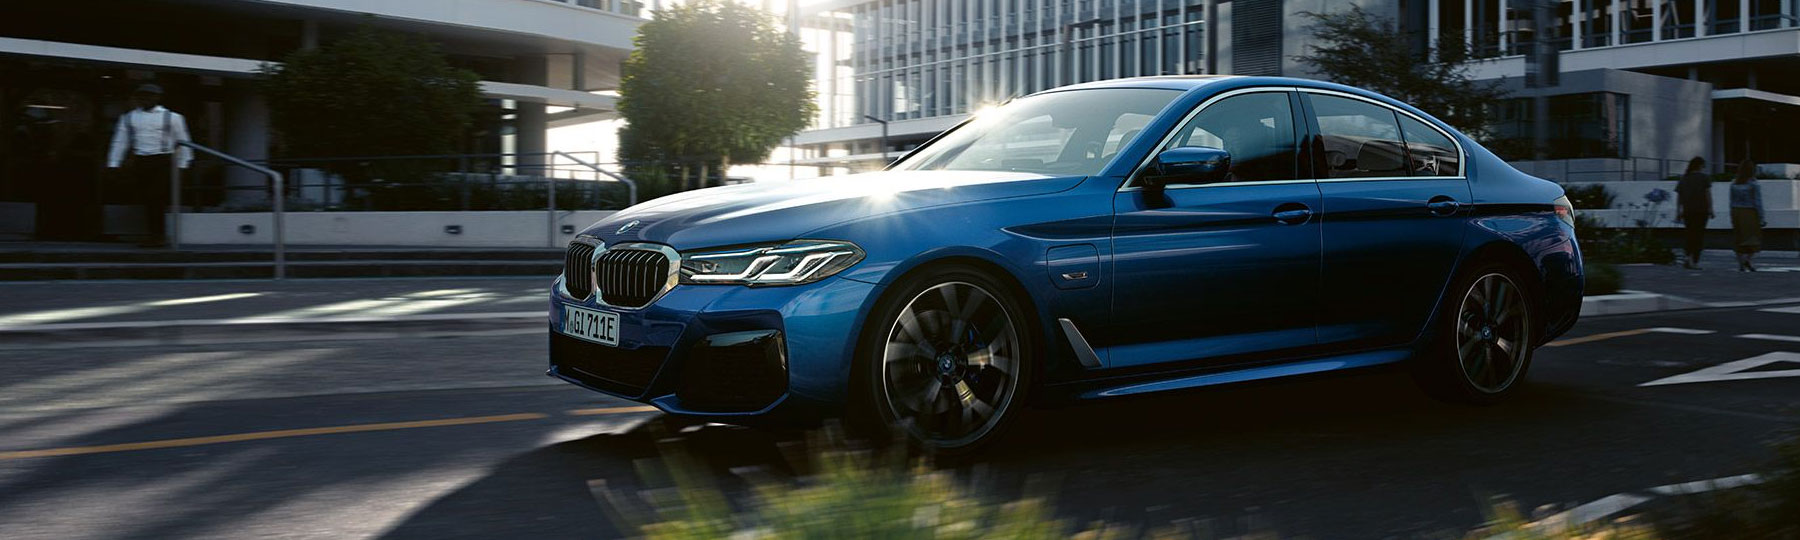 BMW 5 Series Business Offers